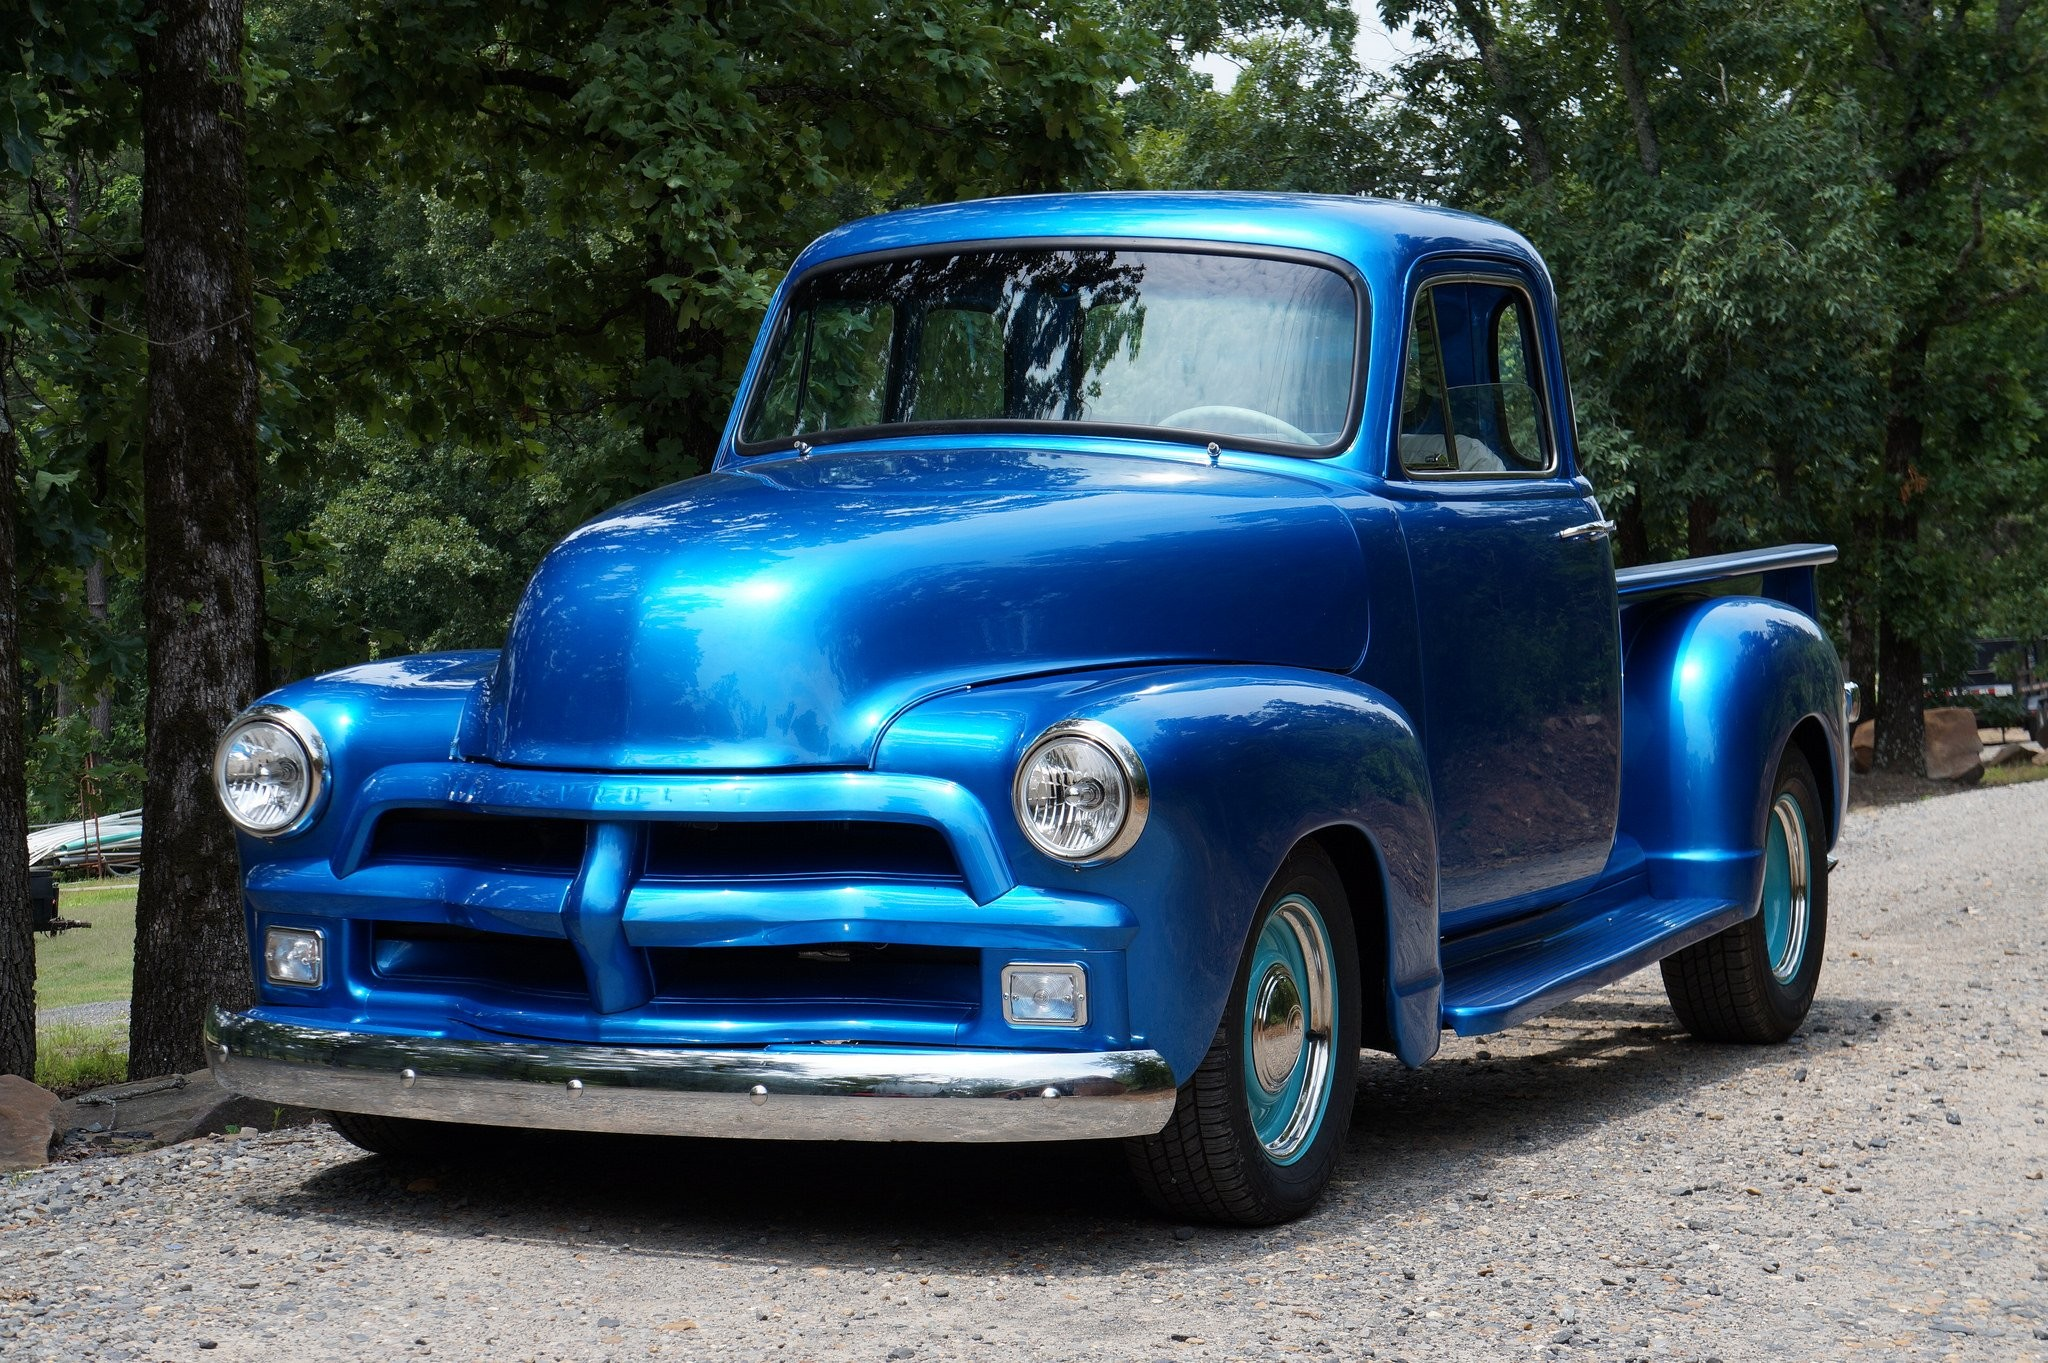 2048x1363 Chevrolet chevy old classic custom cars truck Pickup wallpaper |   | 678439 | WallpaperUP